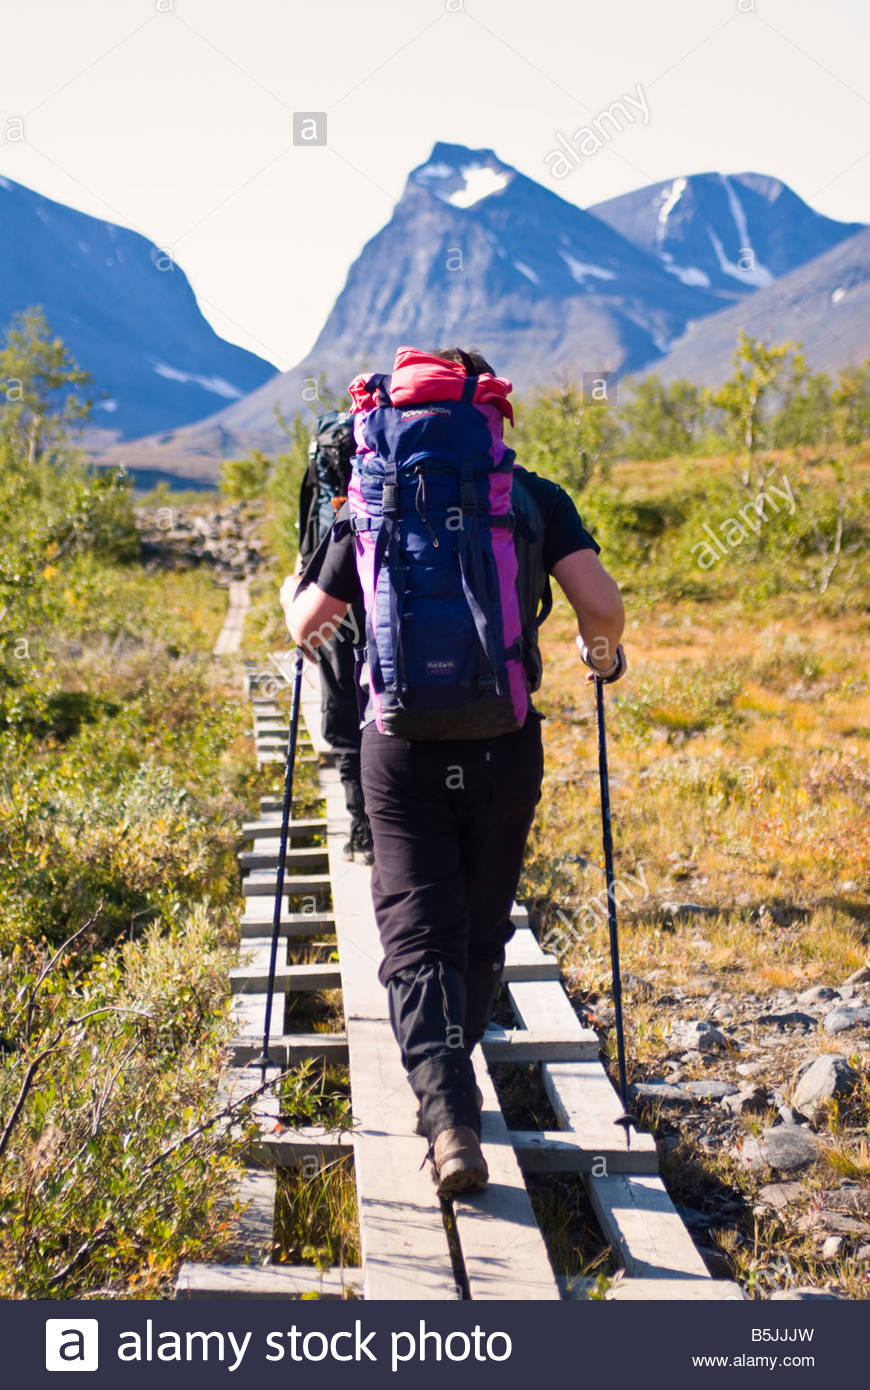 Hiking the arctic wilderness, en route to Kebnekaise, Sweden's highest mountain. - Stock Image